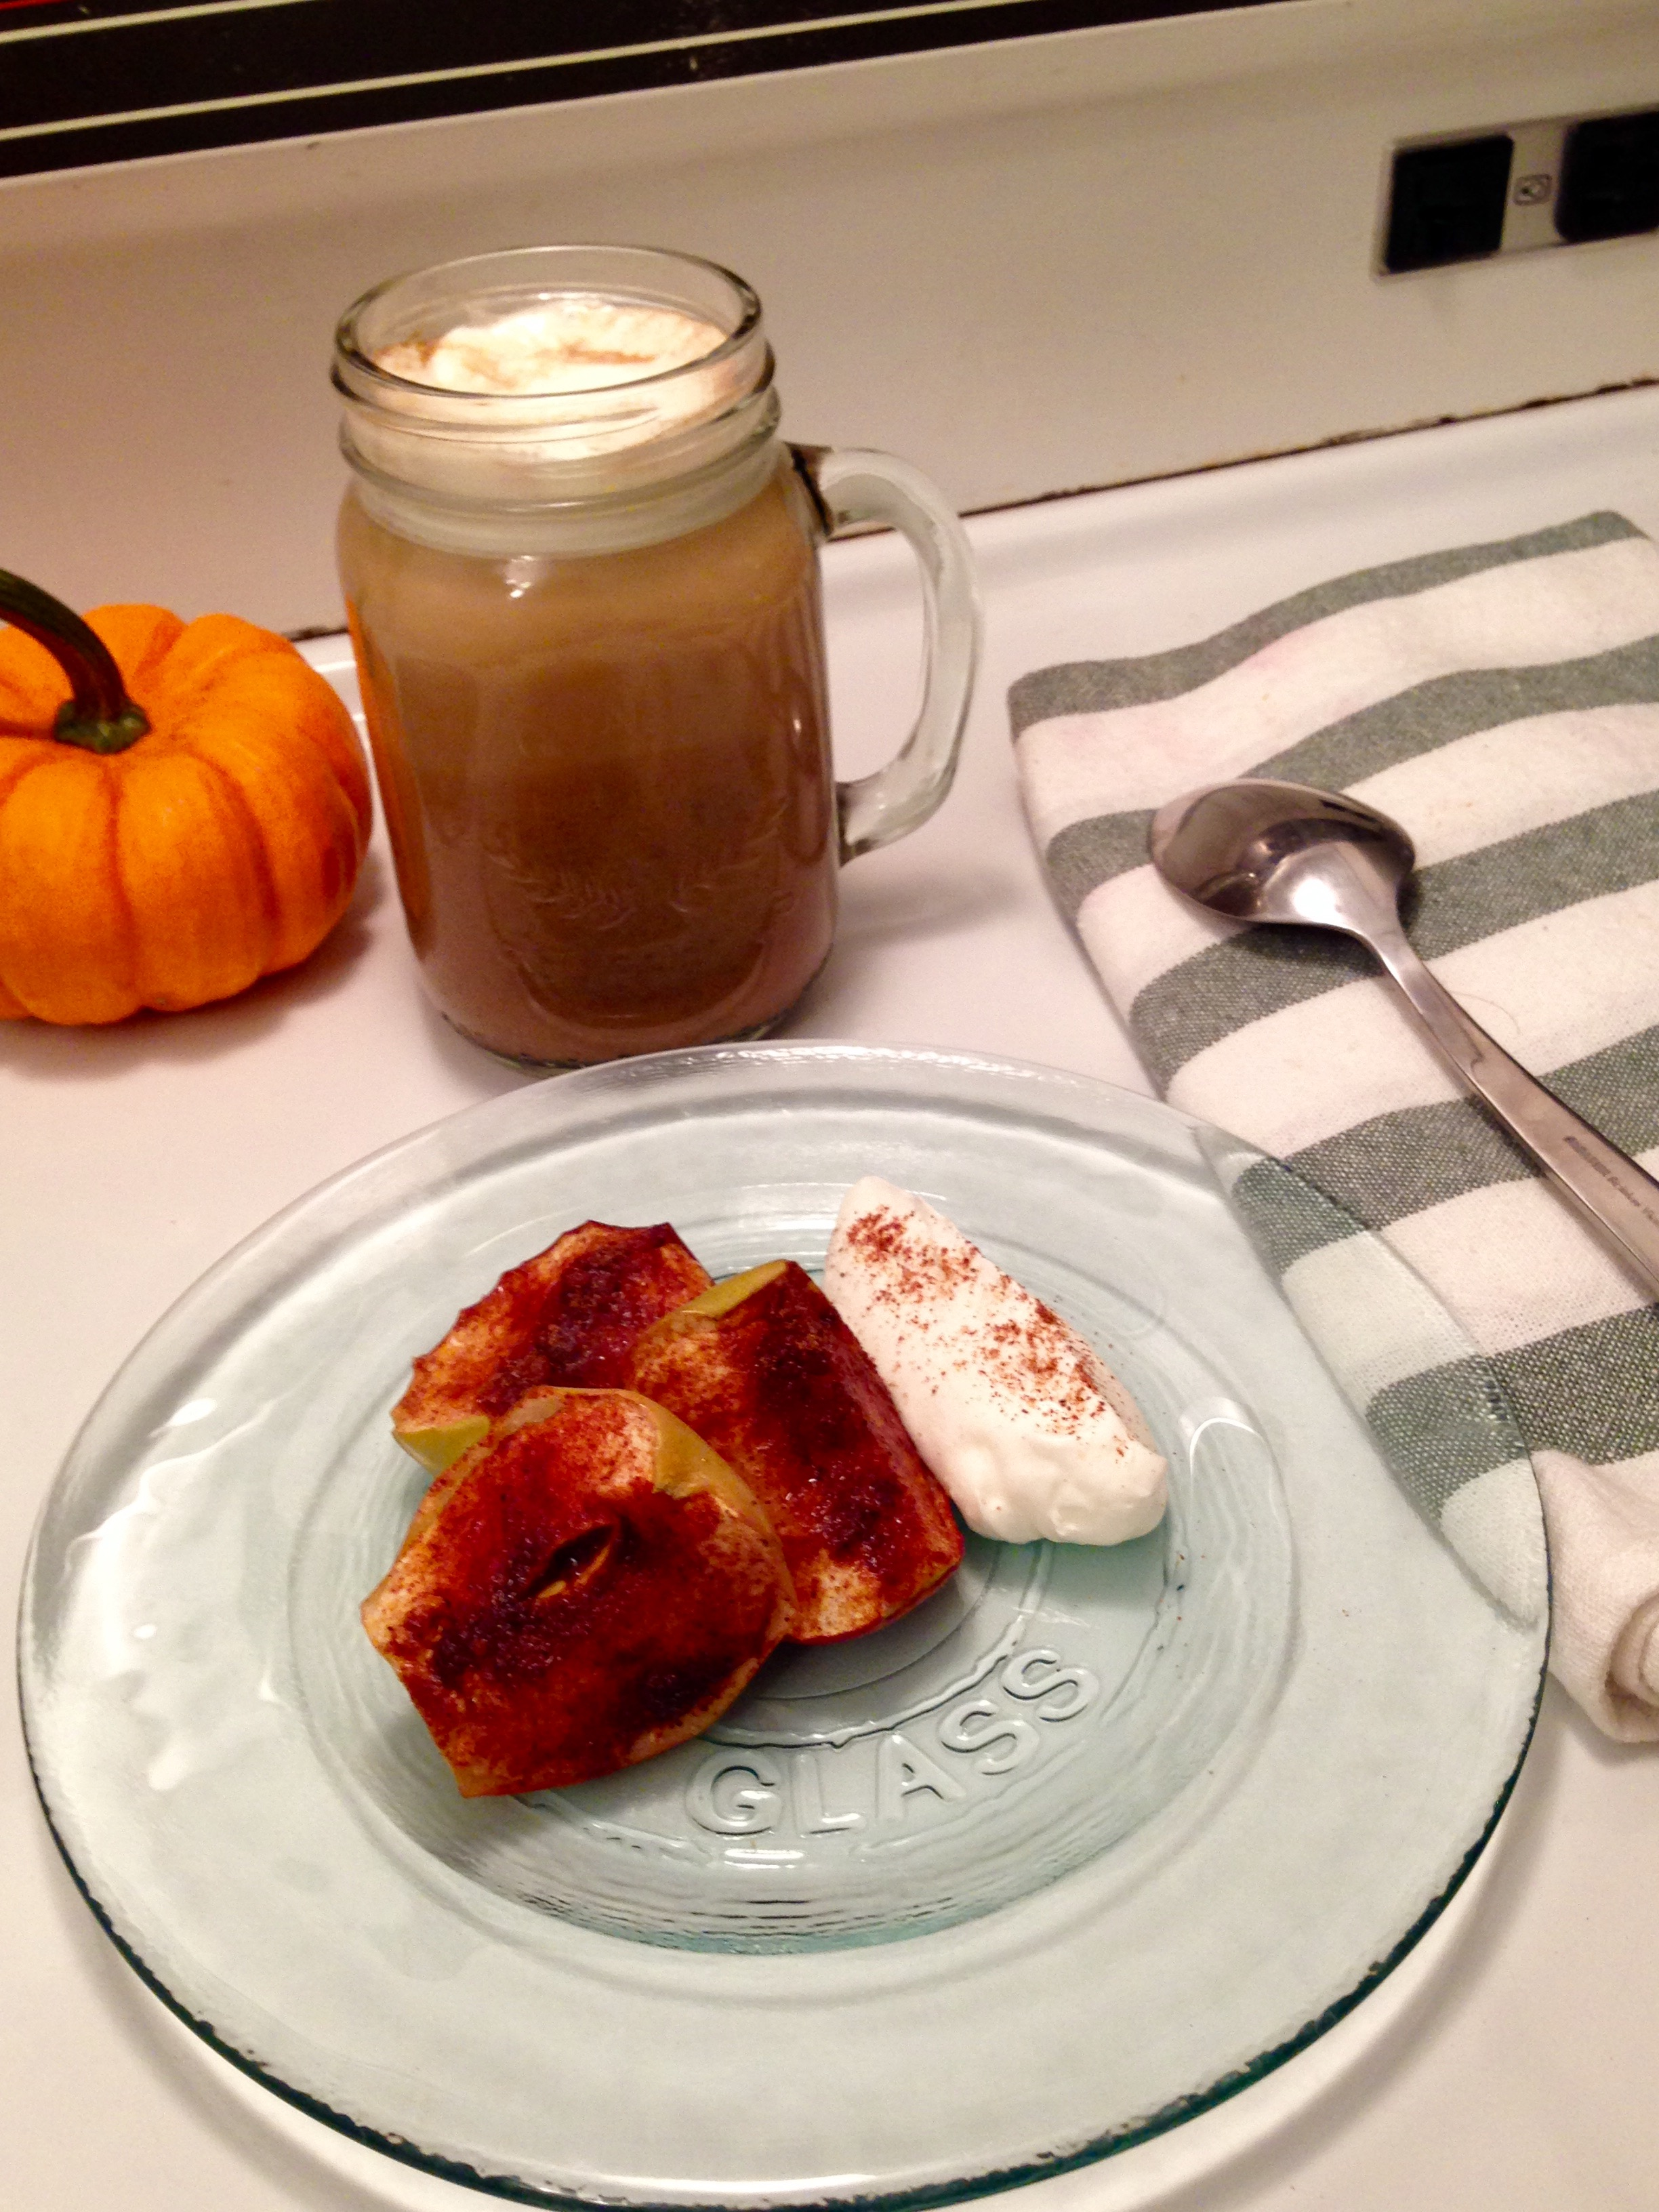 Pumpkin spice is an autumn staple. Luckily you can have it in more than a latte with these pumpkin spice-inspired recipes. Photo by Kyle Davis.